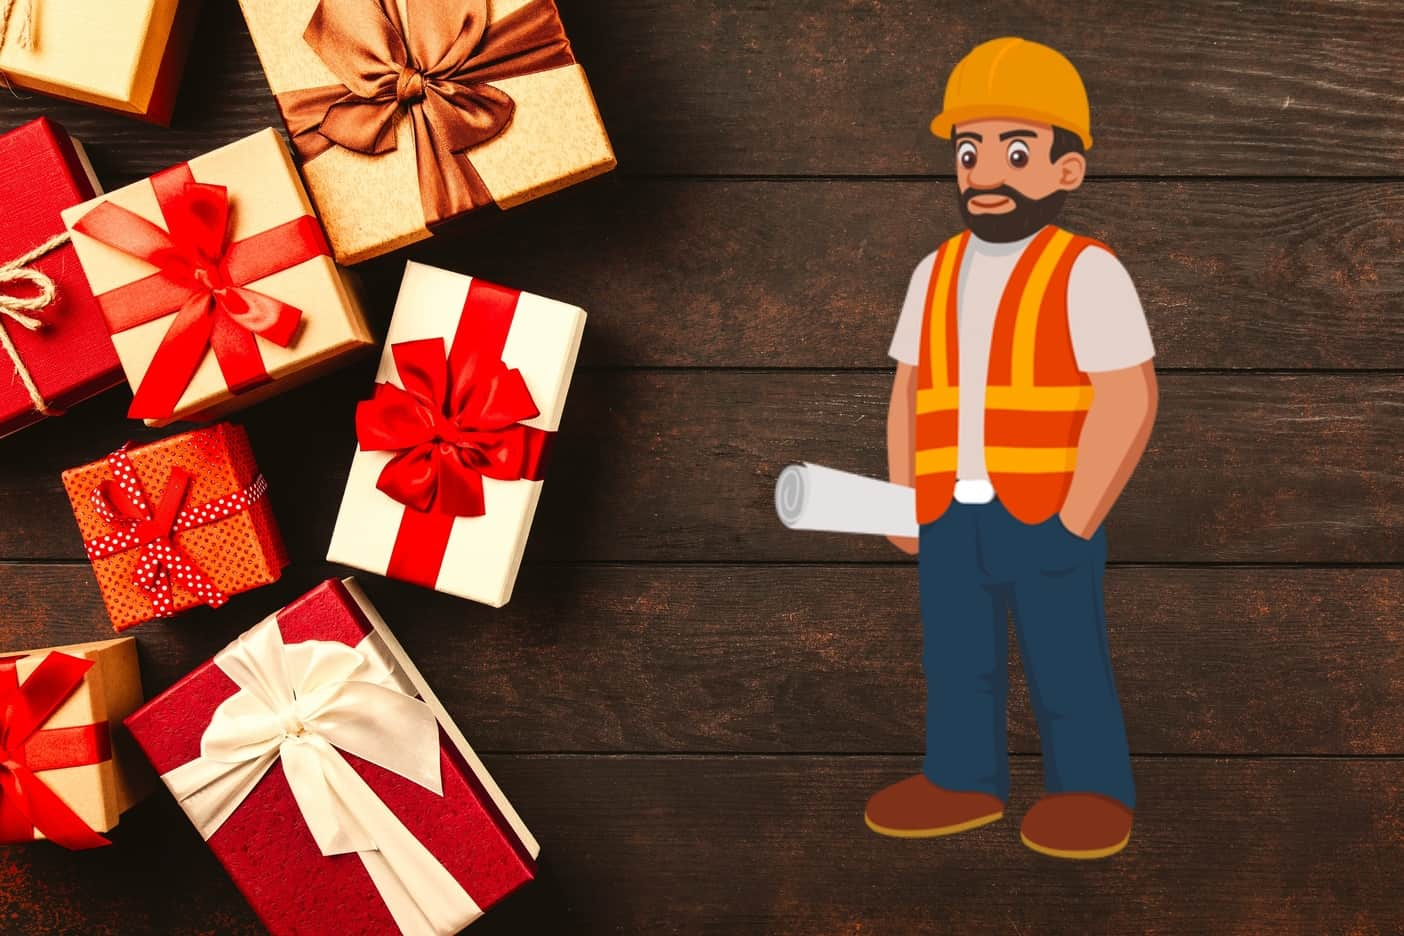 51 Best Gifts for Construction Workers (DIY Ideas Too!)